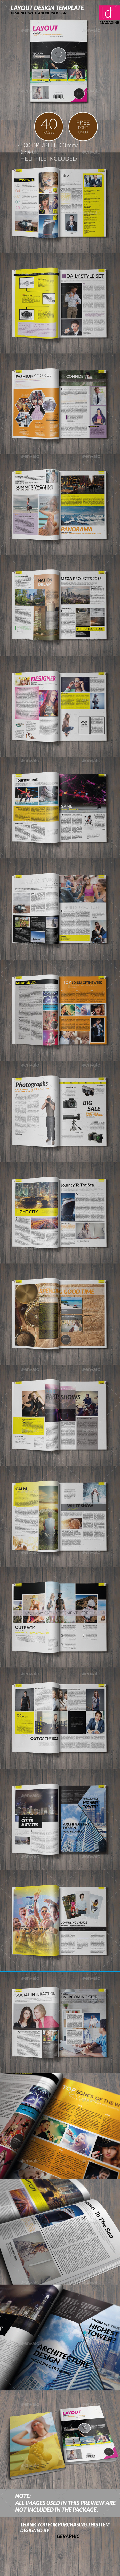 GraphicRiver Magazine Template 40 Pages 10748418